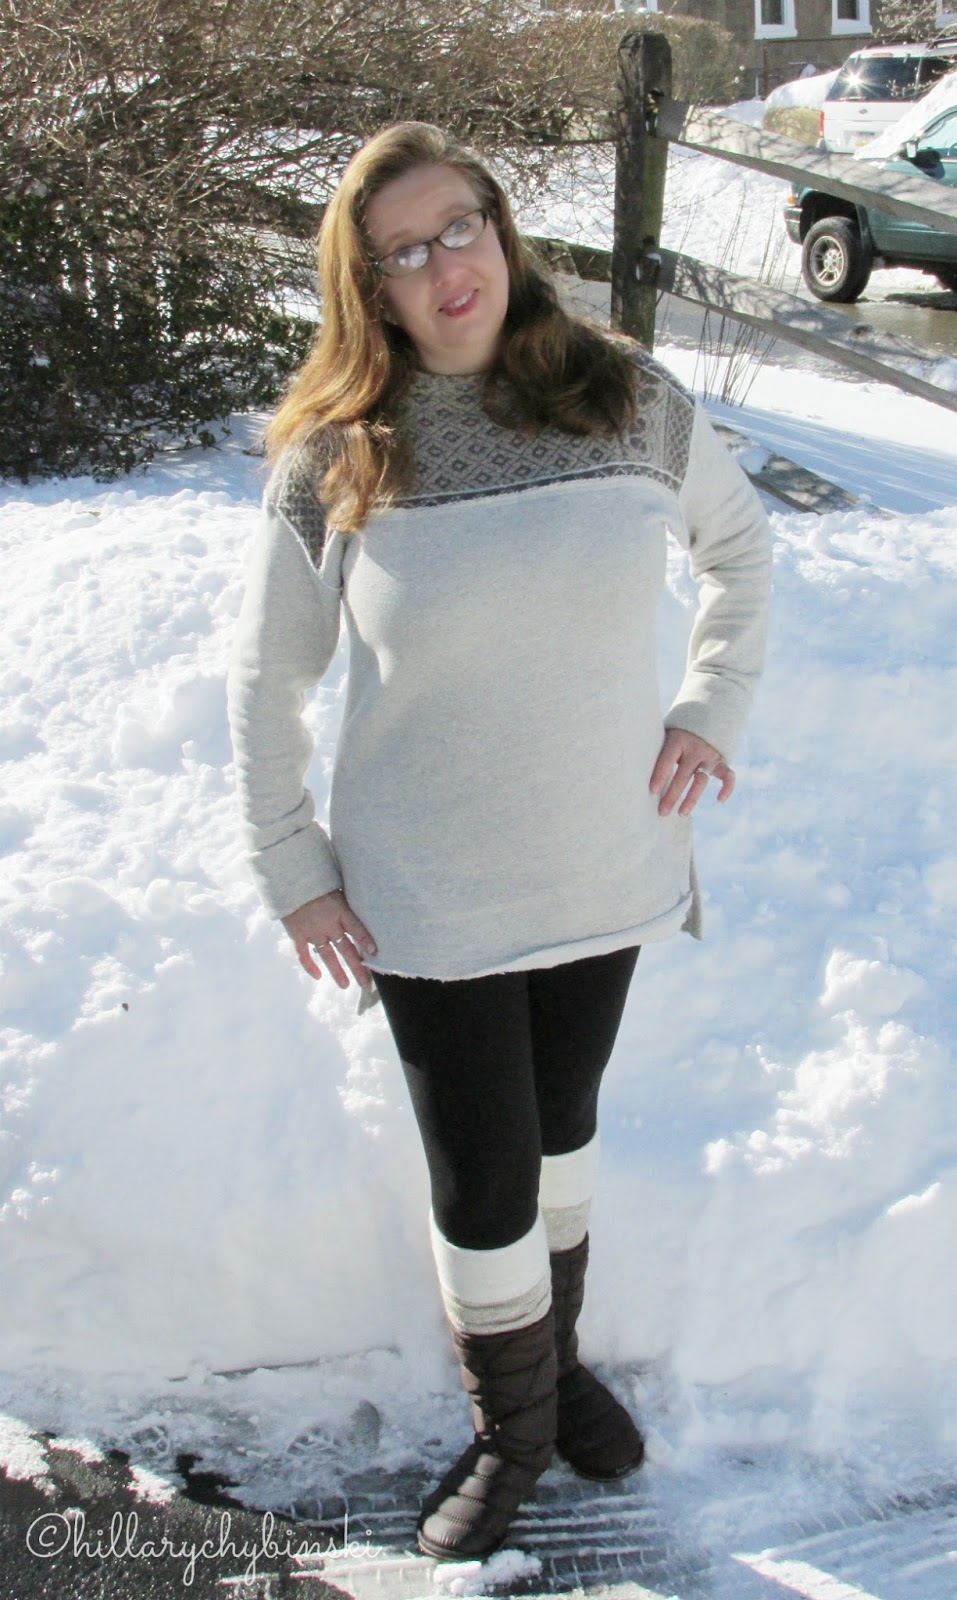 a5e75ab4cd2 Hillary Chybinski  Winter Weather - What I Wore